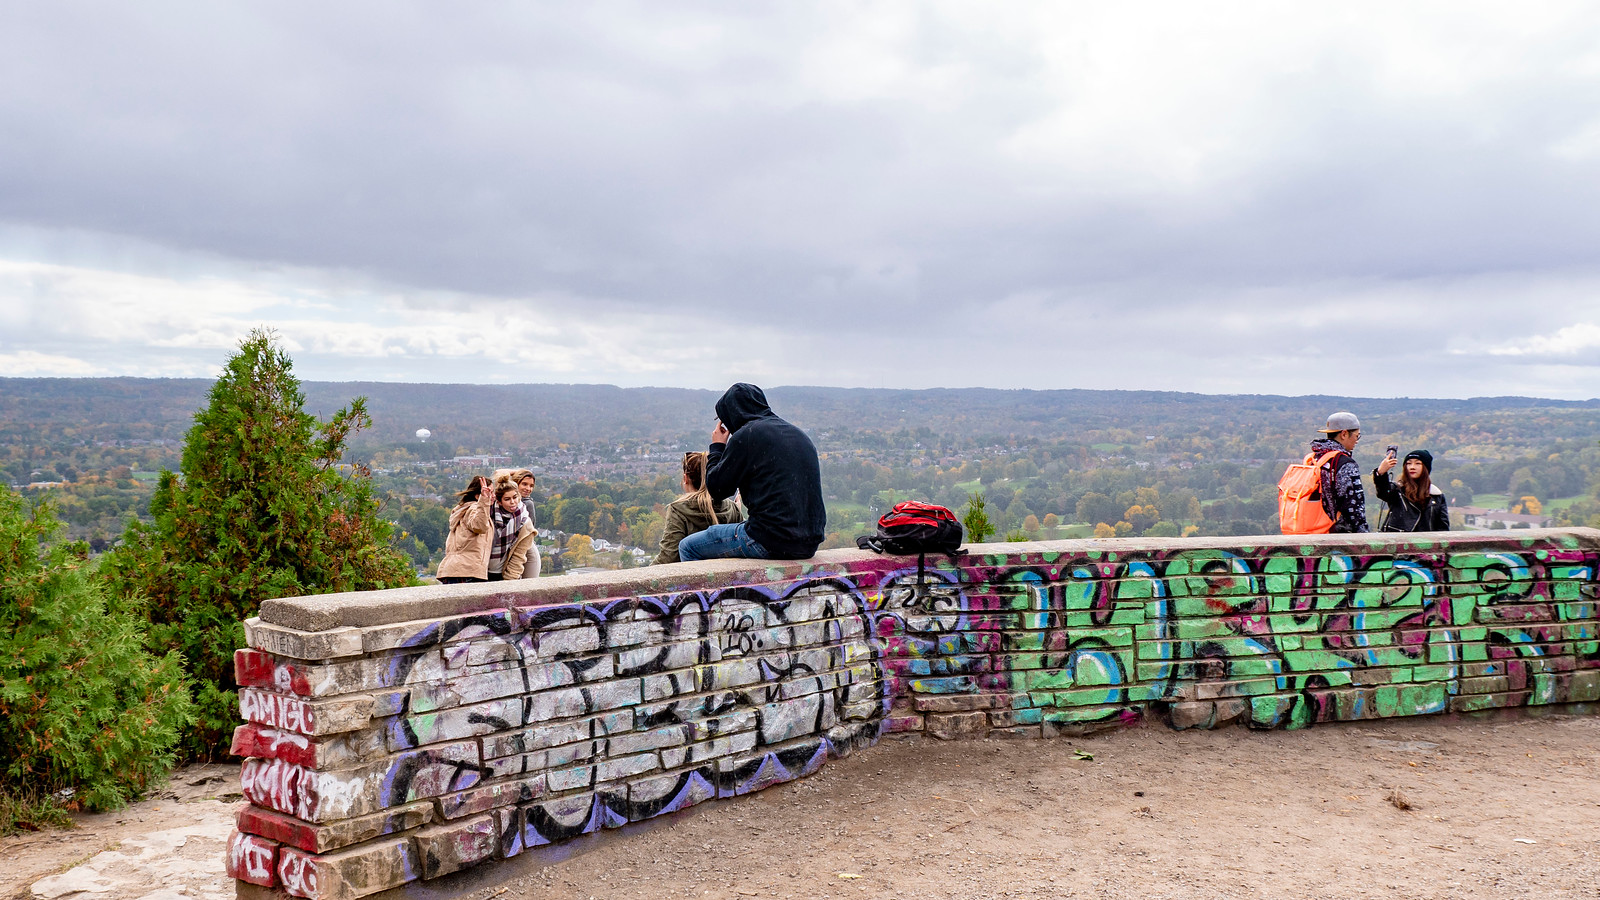 The Dundas Peak lookout wall covered in graffiti